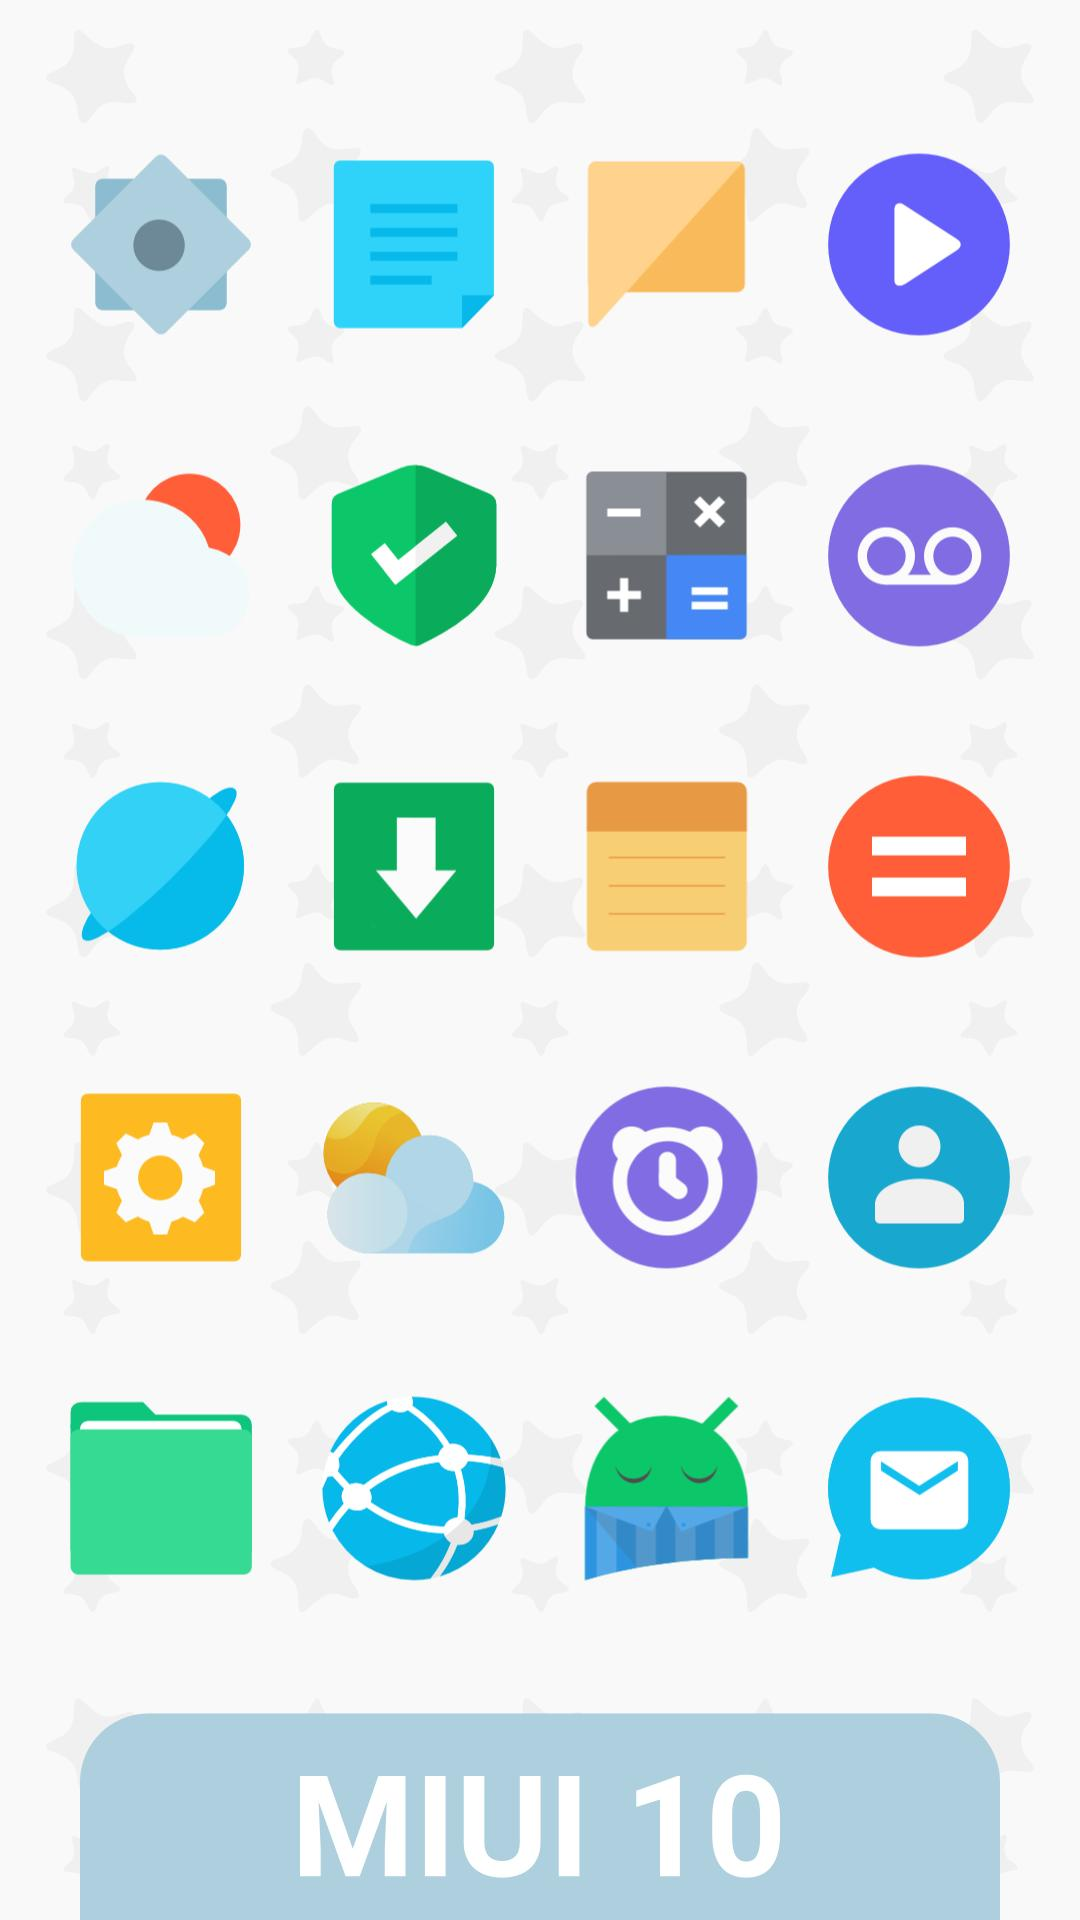 MIUI 10 Icon Pack for Android - APK Download